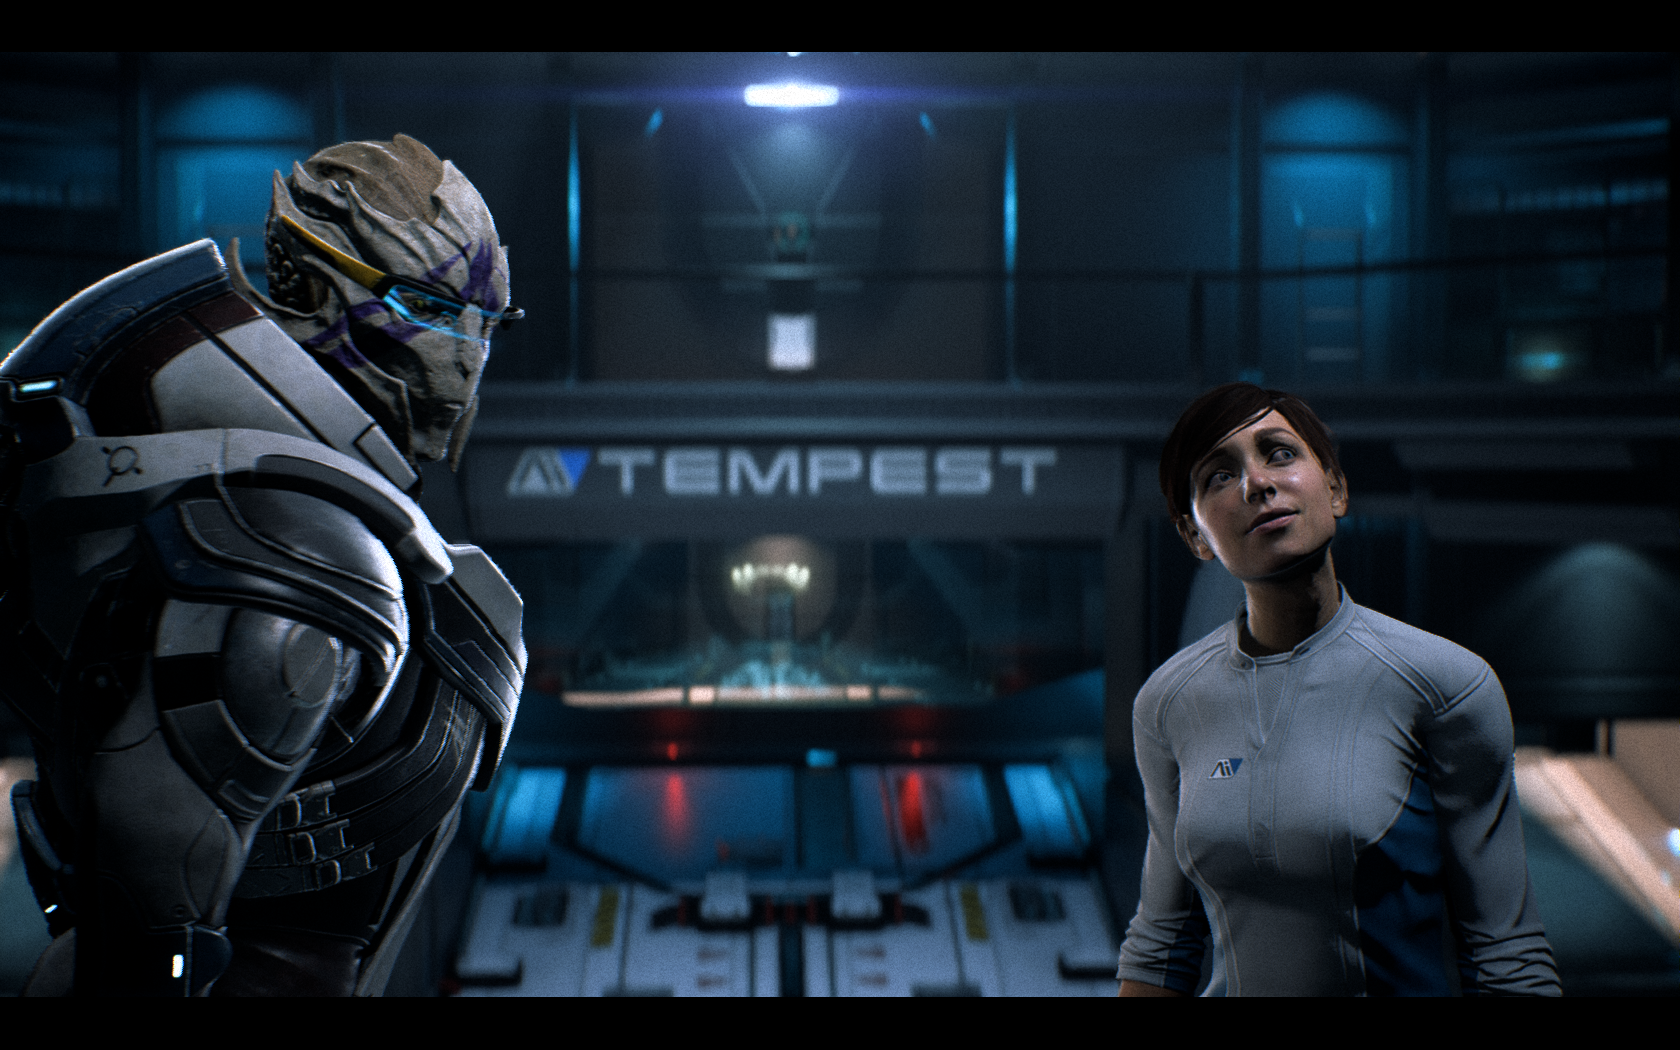 Mass Effect Andromeda 03.23.2017 - 11.17.22.27.png